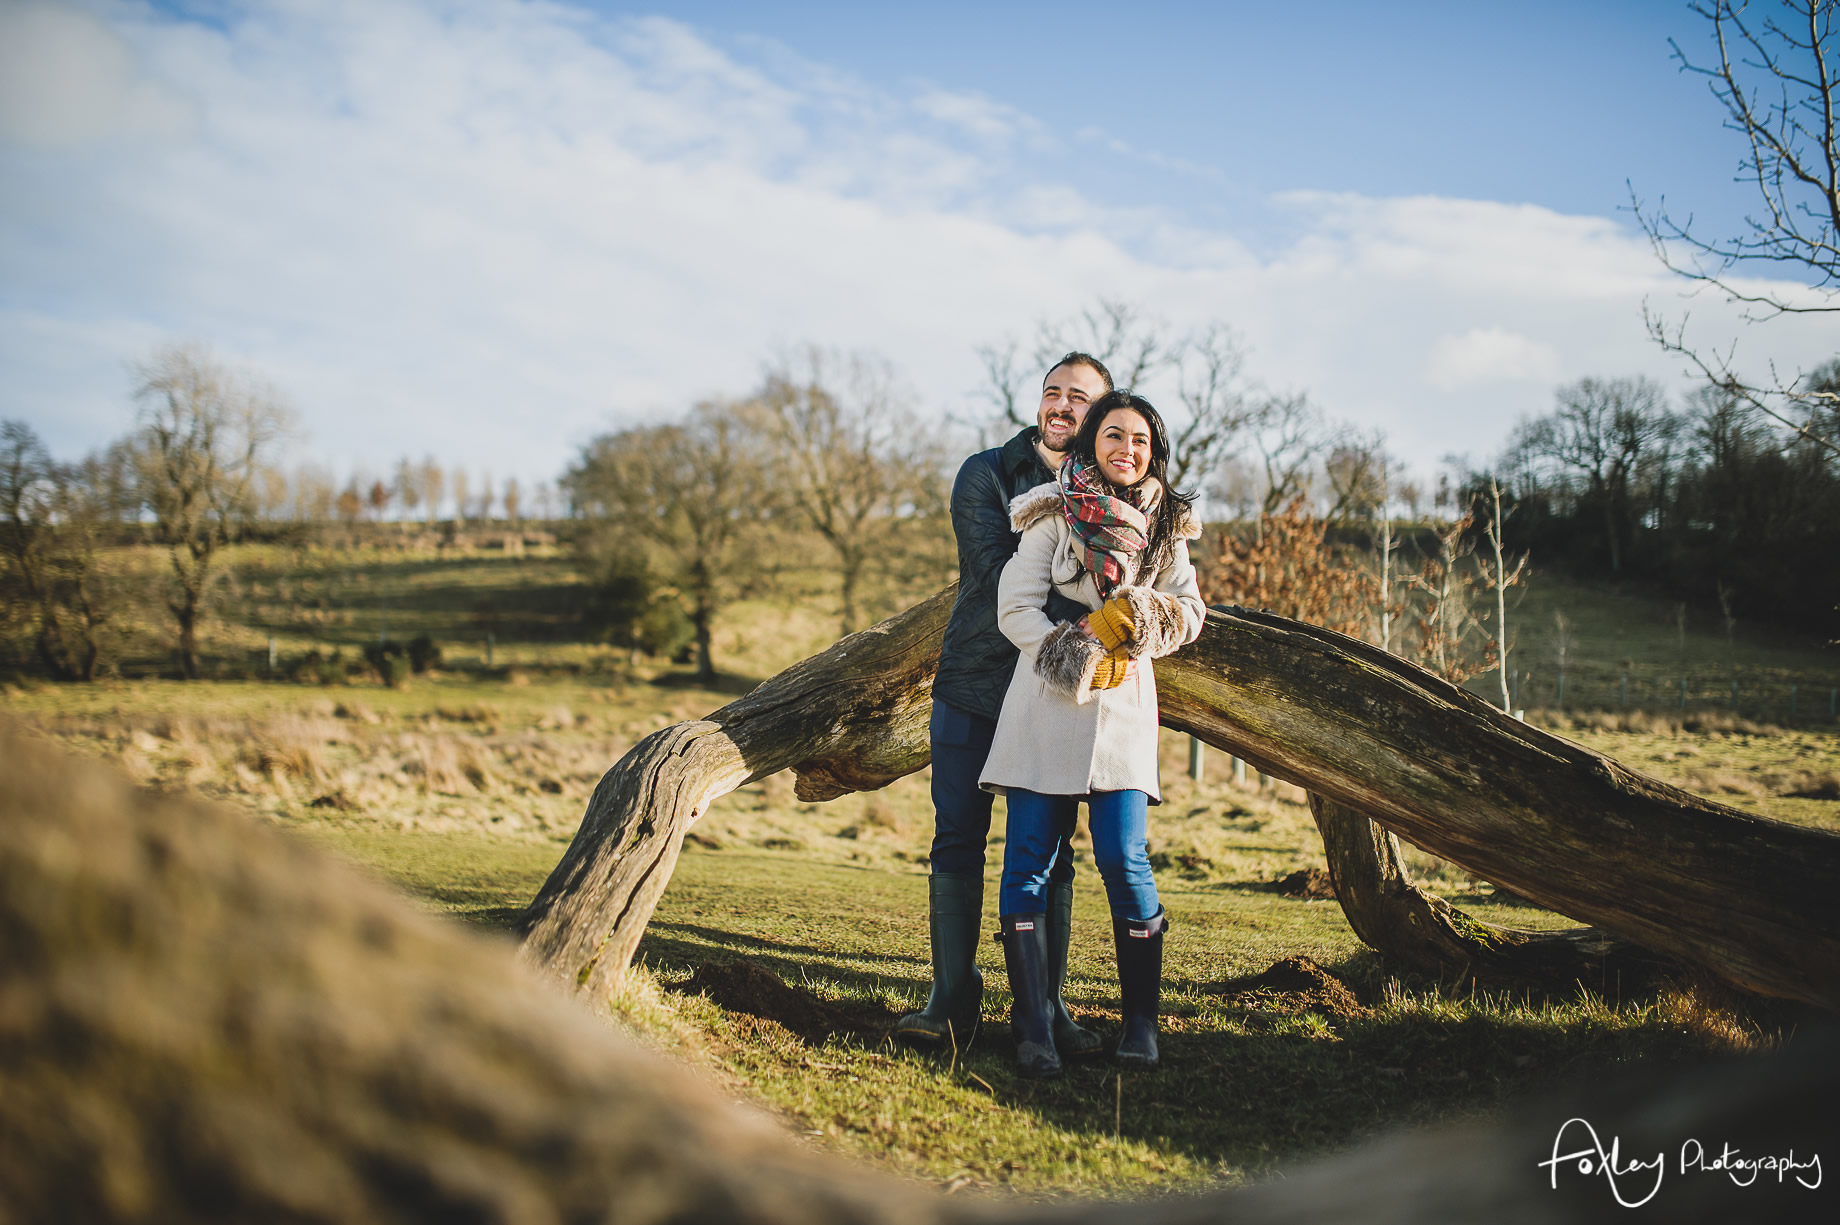 Trina and Luca's Pre-Wedding Shoot at Dinckley Riverside 023